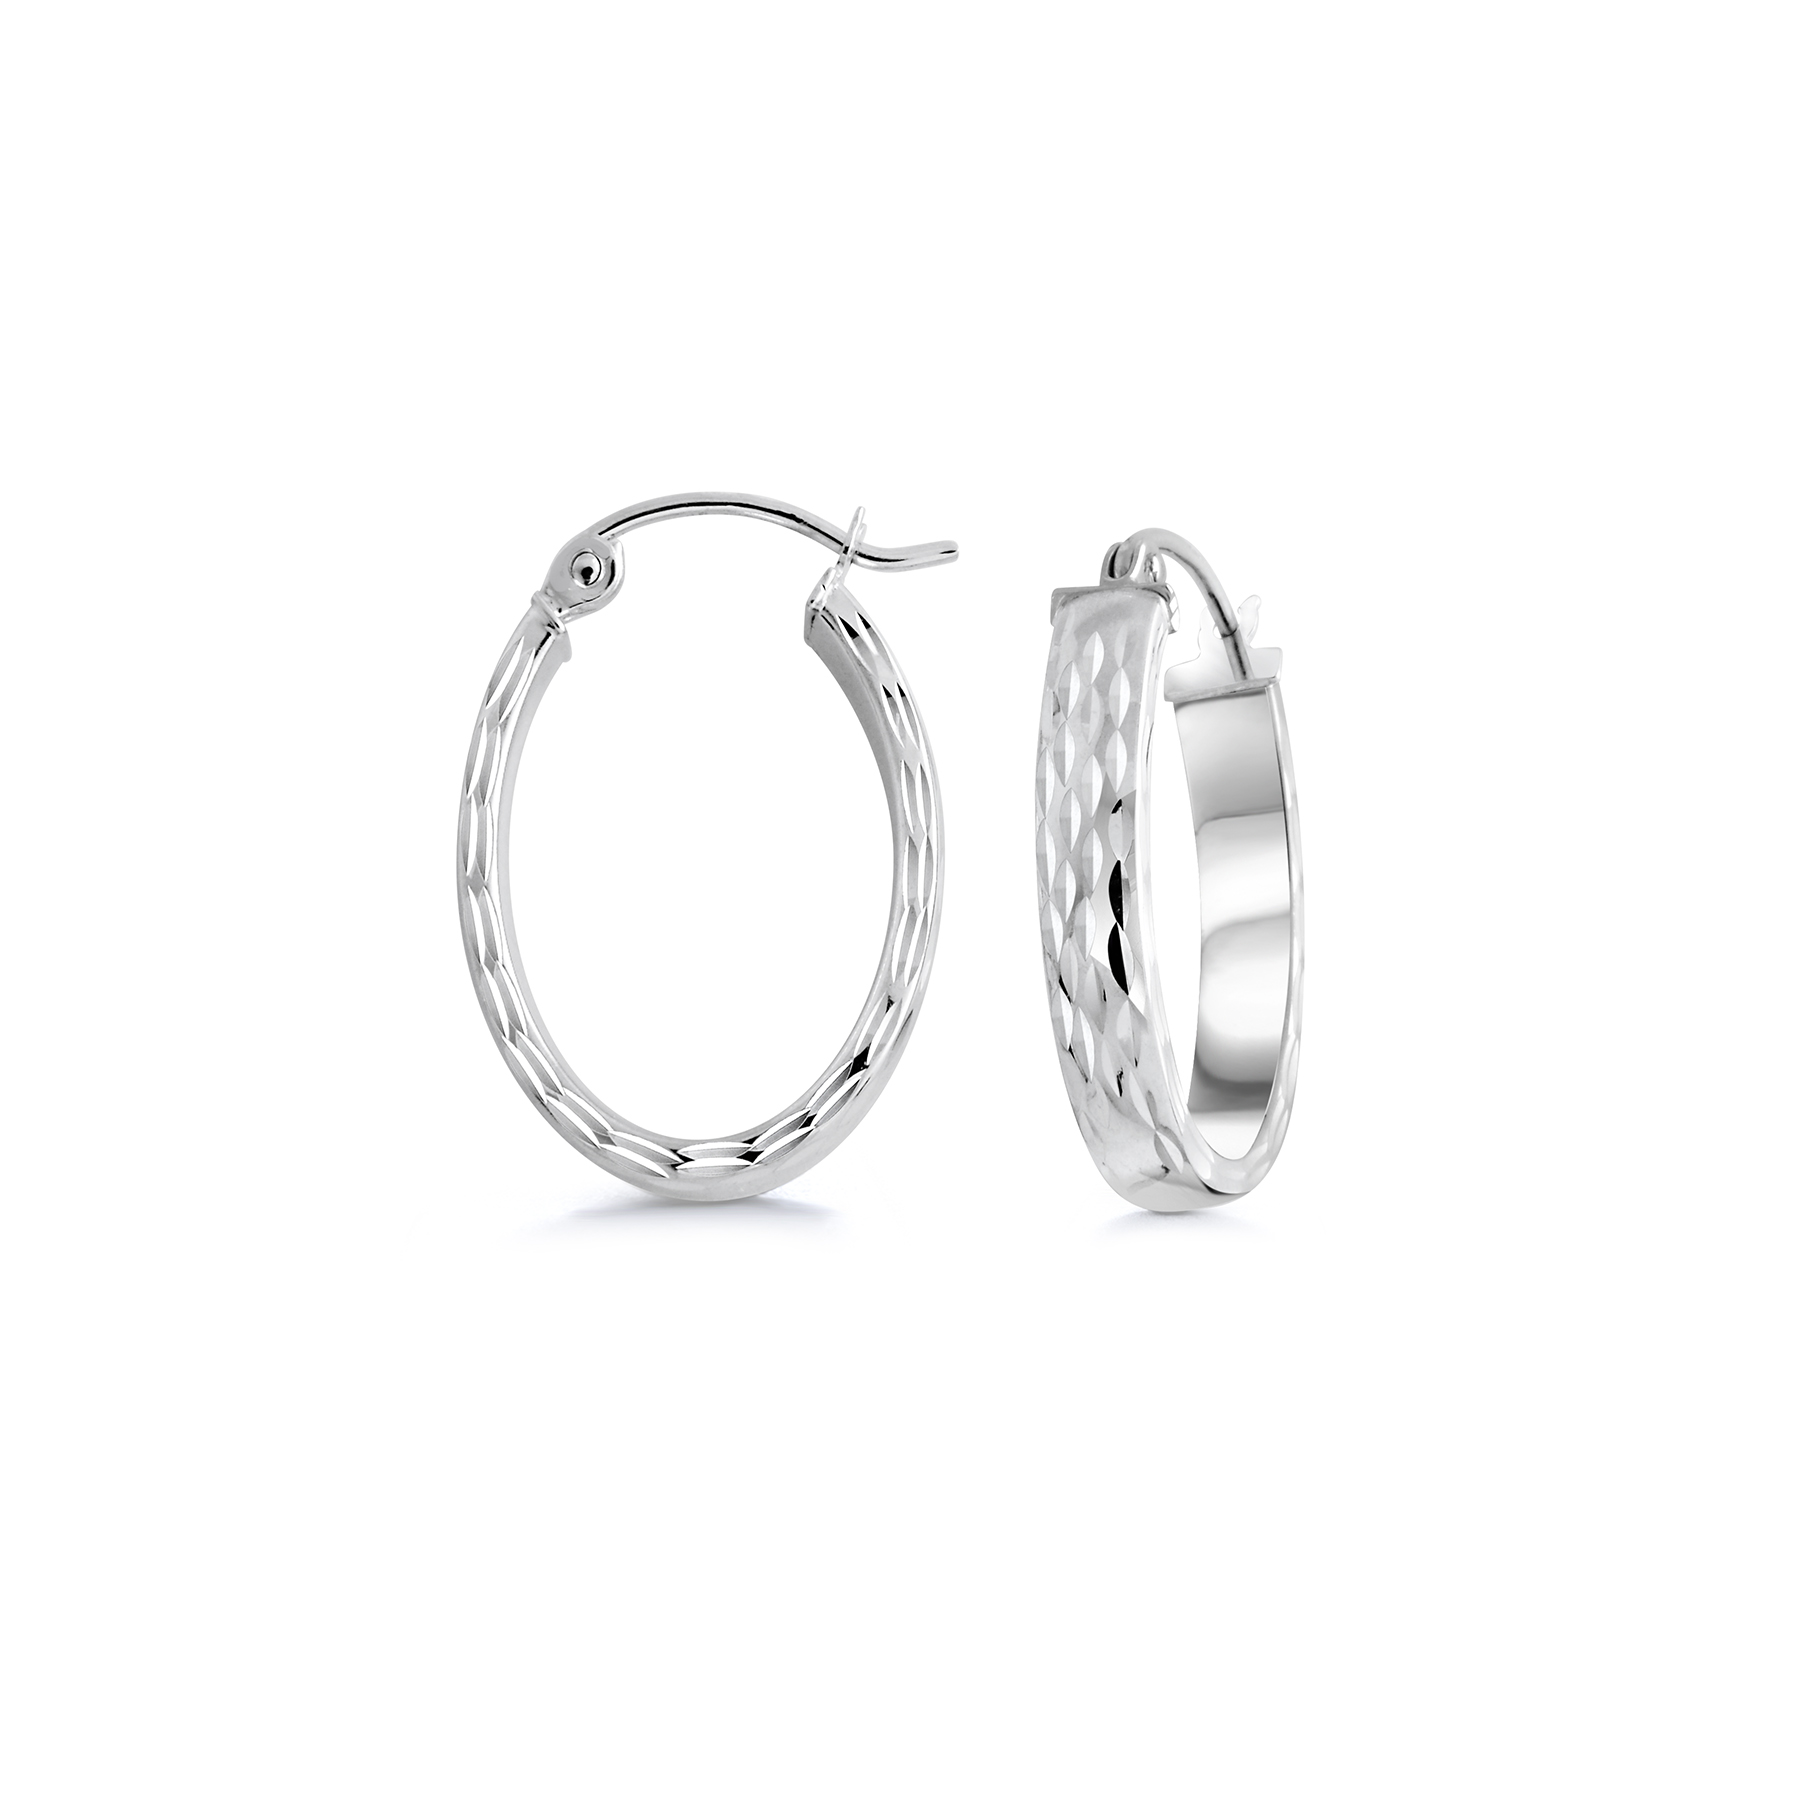 Oval hoop earrings with a diamond cut finish - 10K white Gold